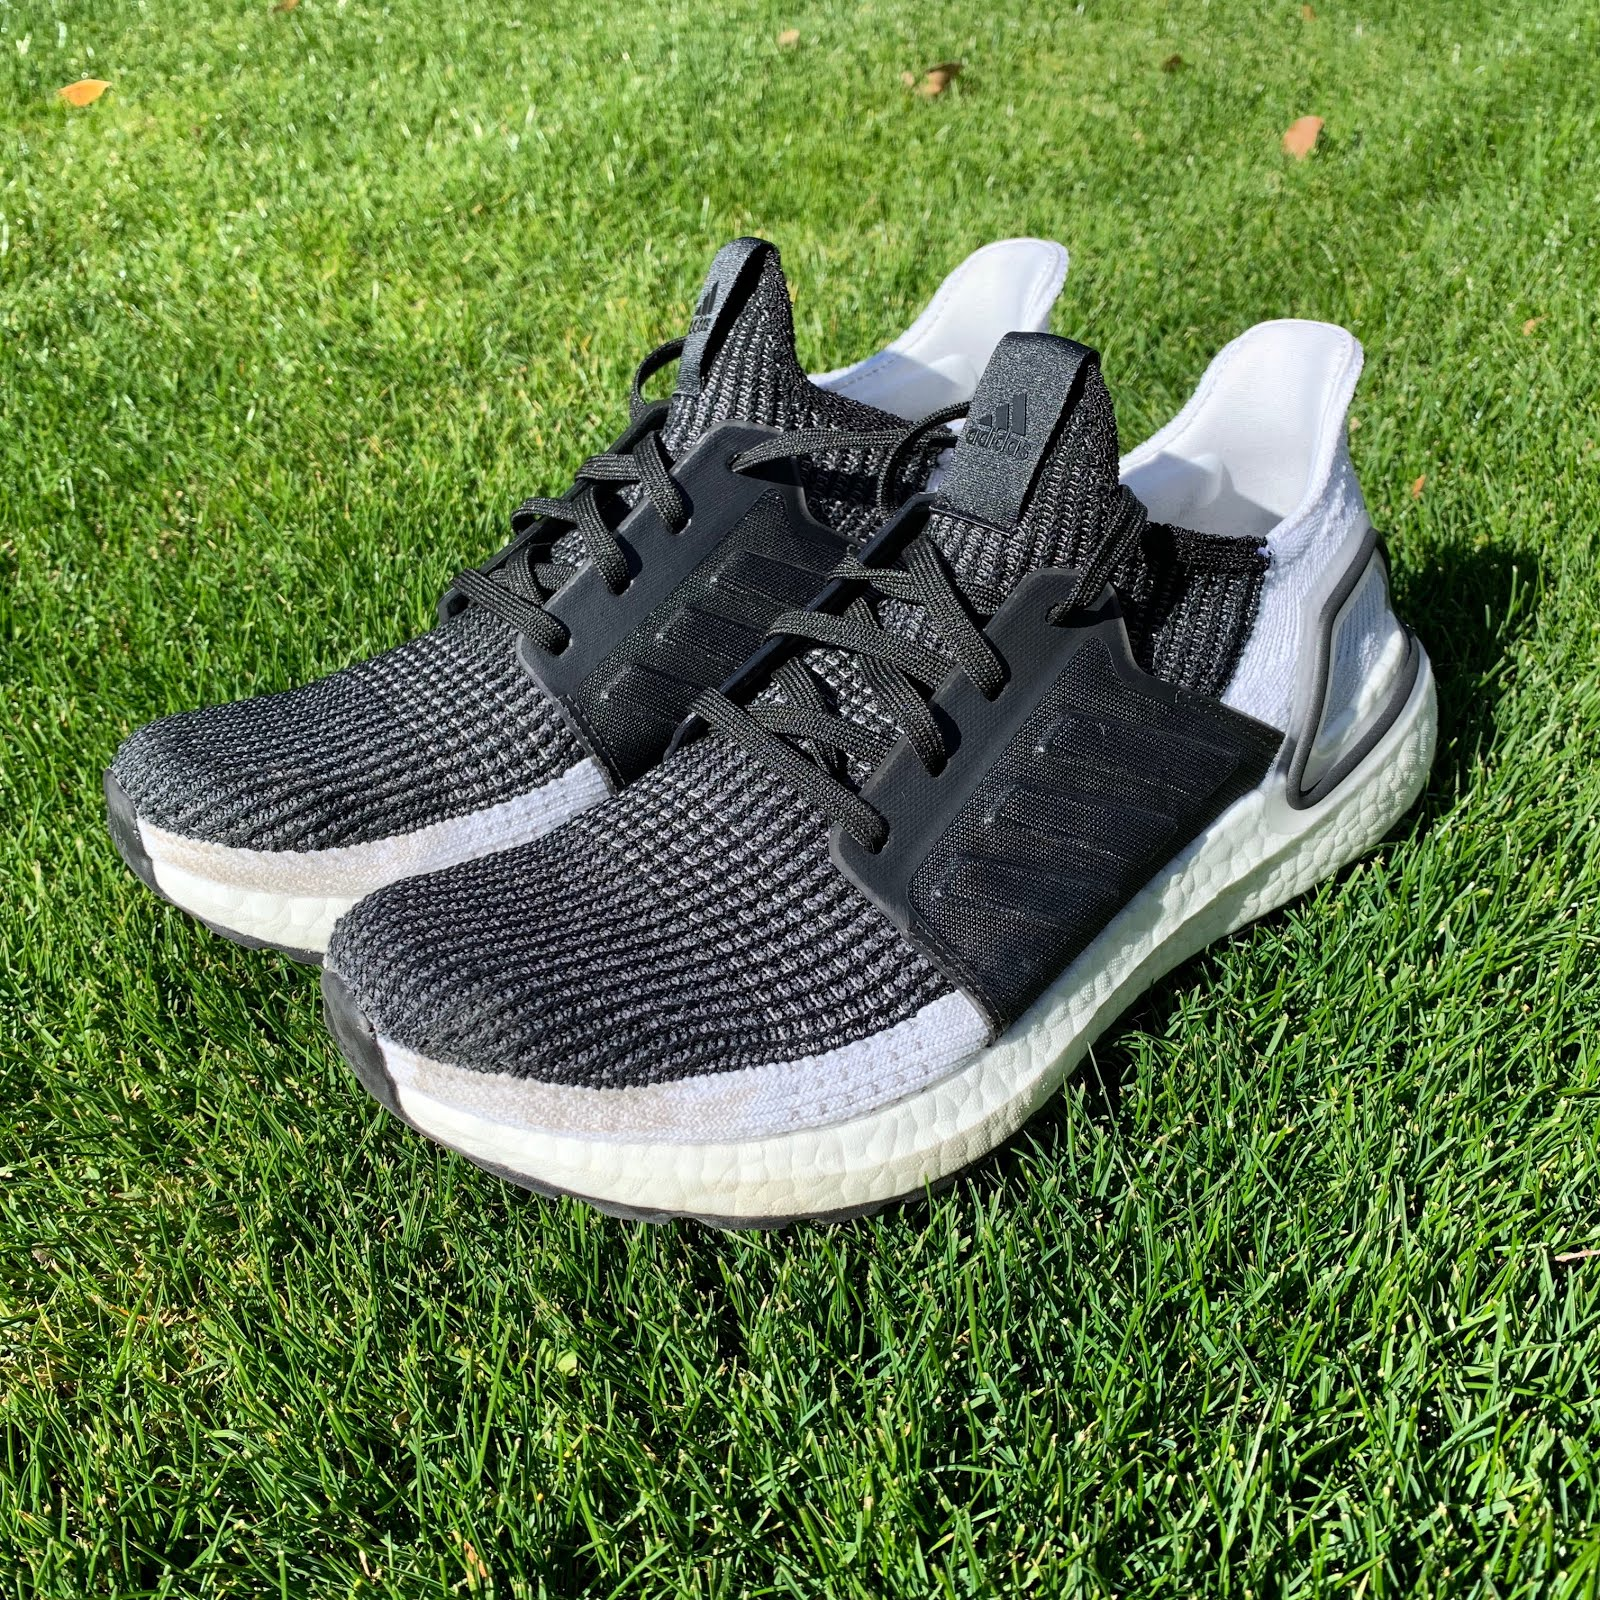 740b116e698 Many runners have held the Ultra Boost as a lifestyle sneaker